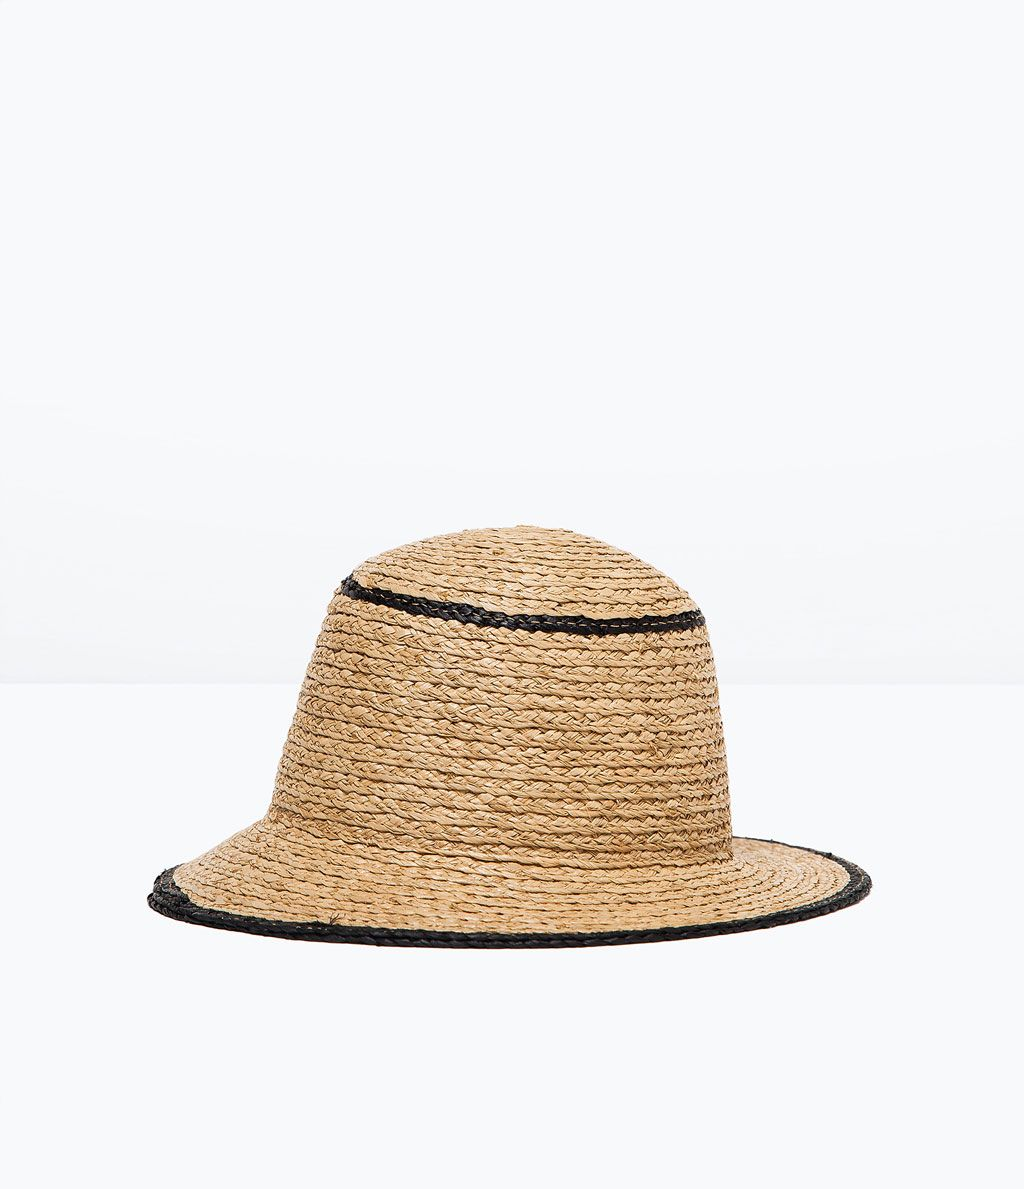 919cea13 RAFFIA HAT from Zara | WARDROBE | Raffia hat, Beachwear for women, Hats